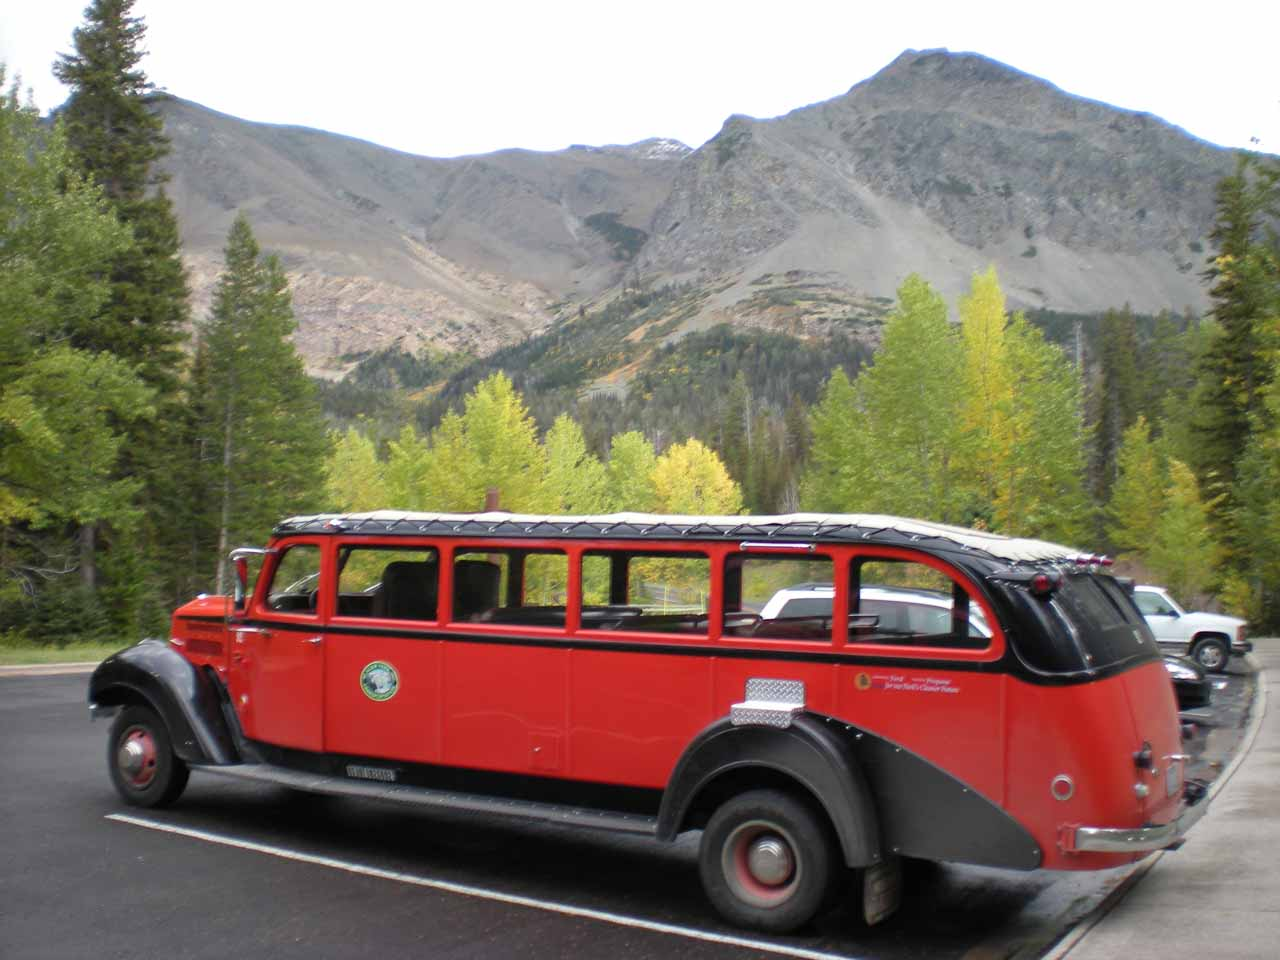 A red tour bus we saw at the trailhead for Running Eagle Falls